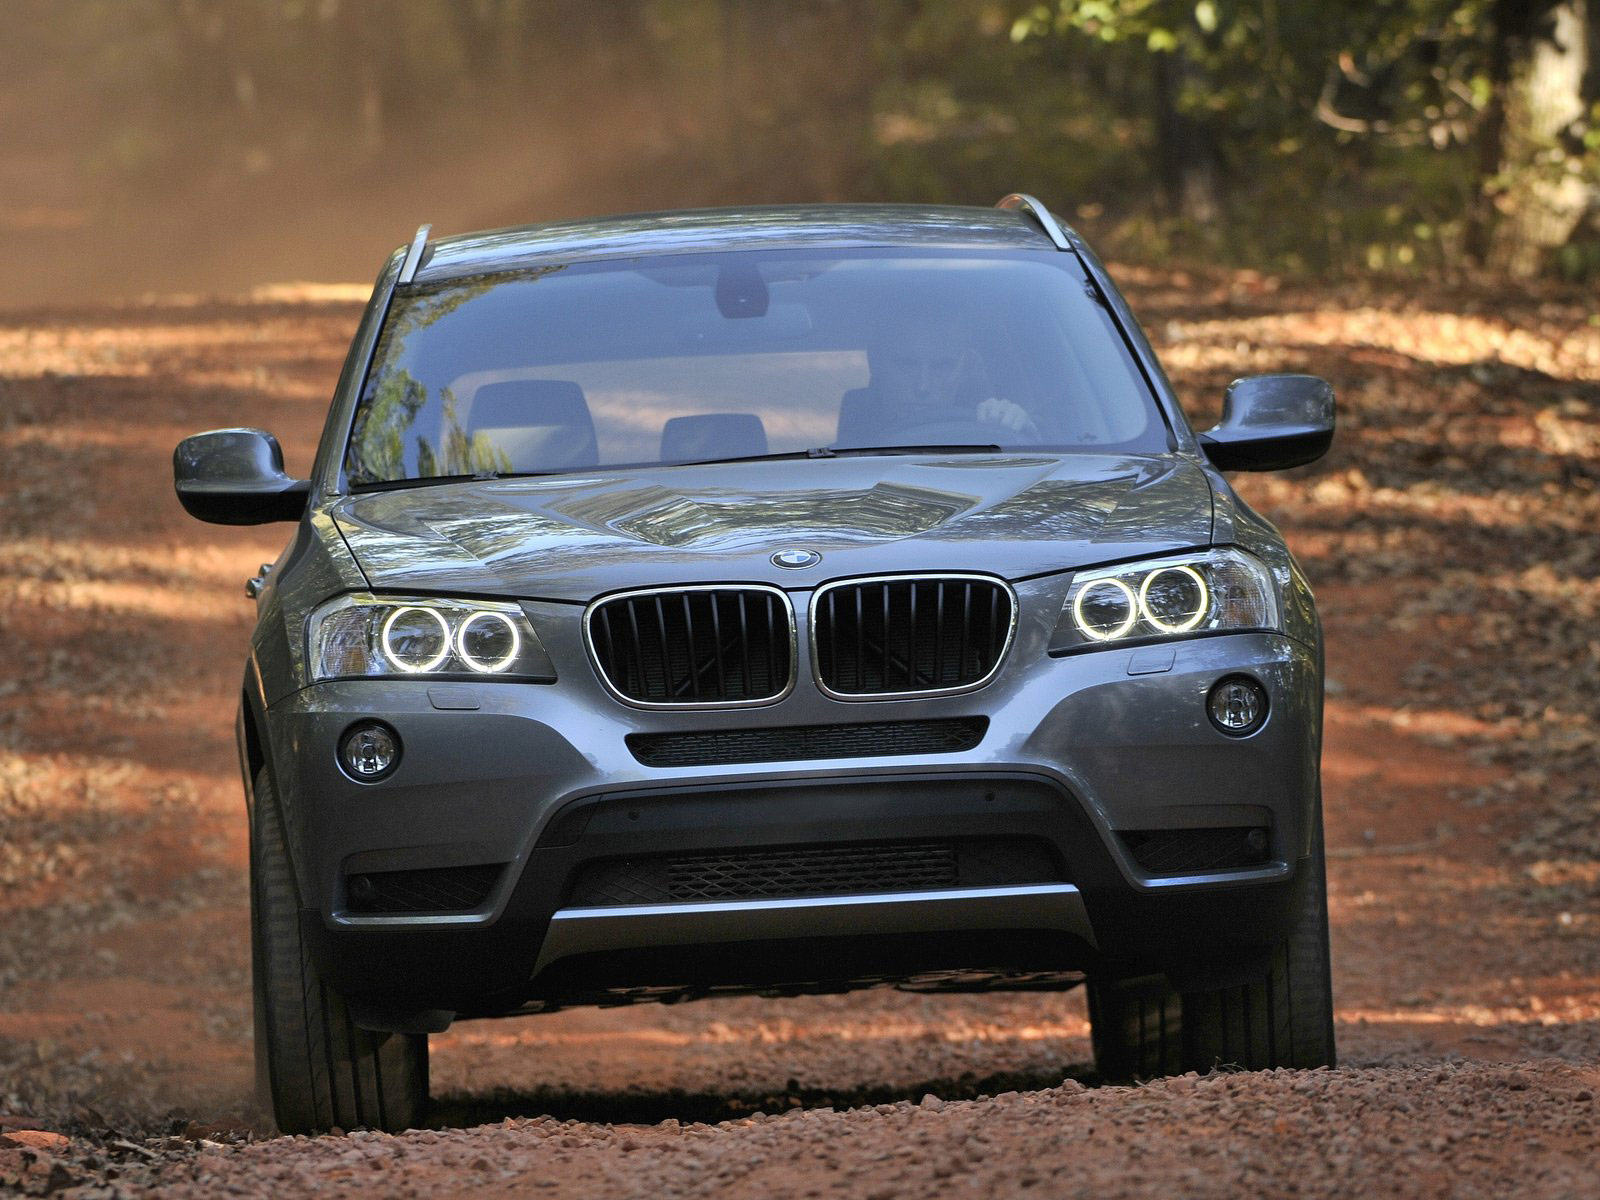 2011 BMW X3 xDrive20d wallpapers, accident lawyers info